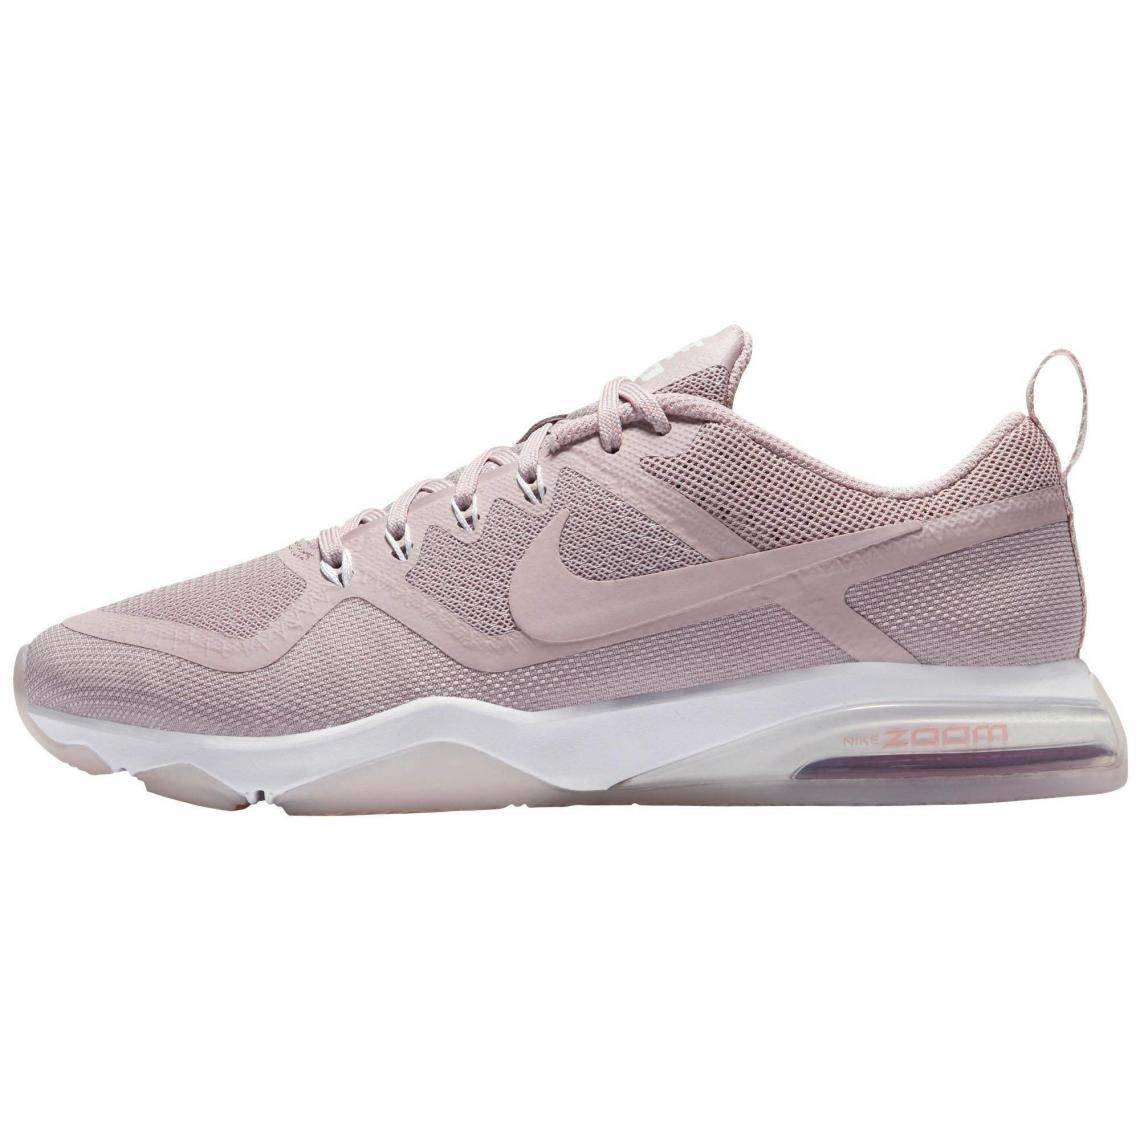 Nike Chaussures Rose Sombre fitness Fitness Zoom Air femme de ggaxZqnSzt